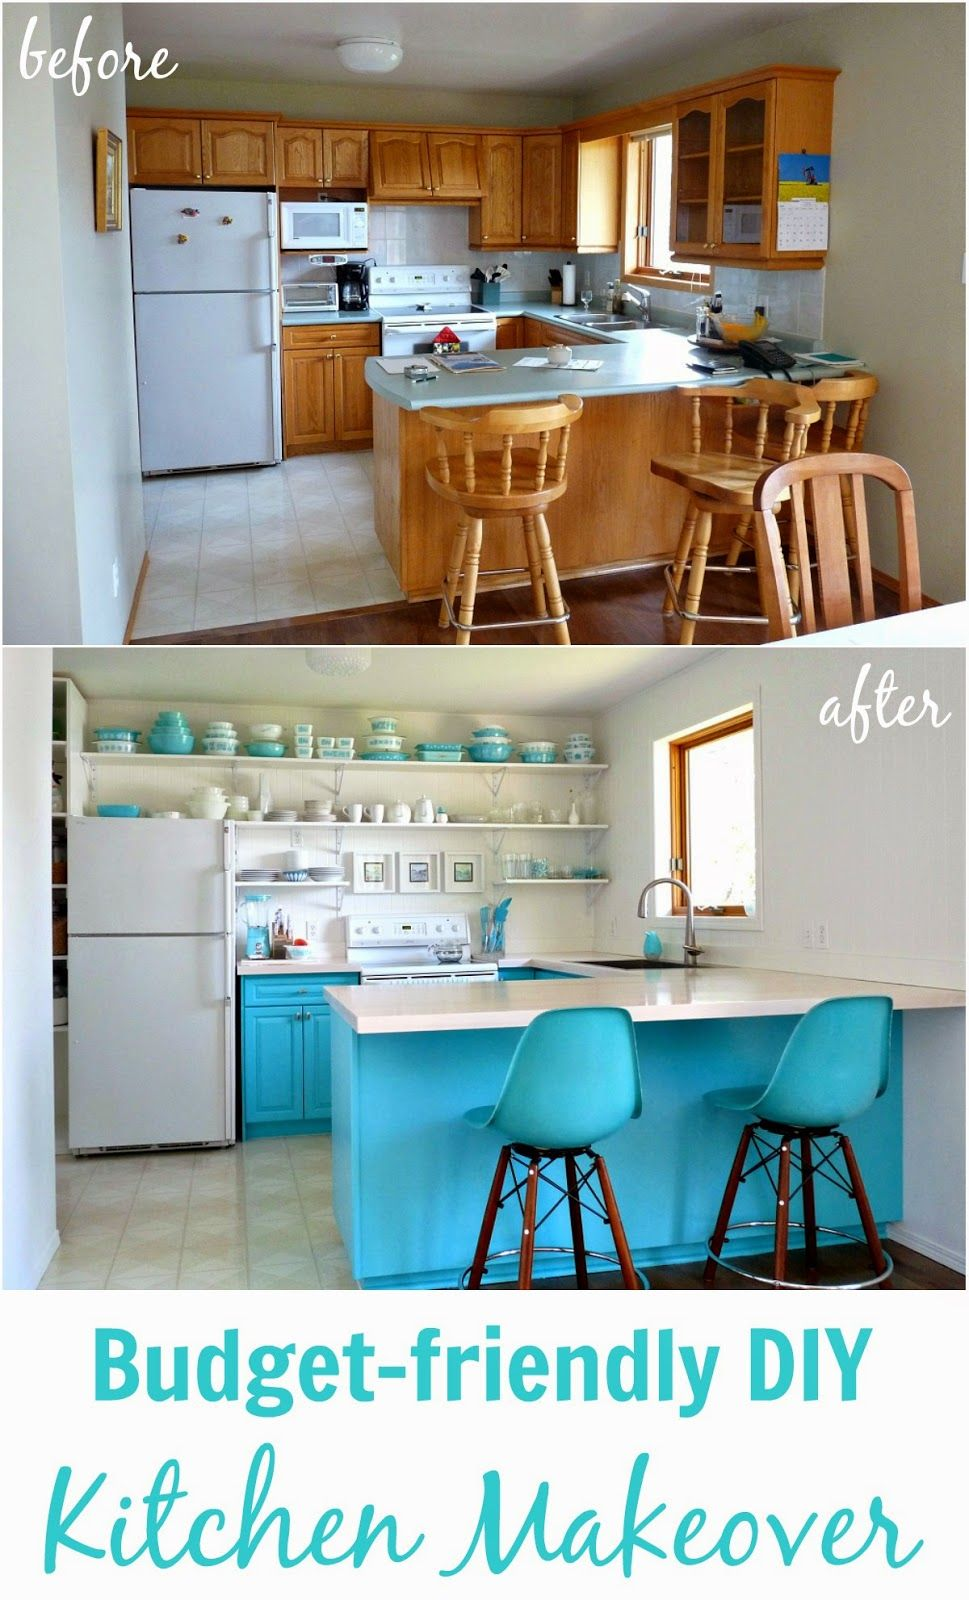 5 Ways To Remodel And Reinvent Your Kitchen | Pinterest | Diy ...